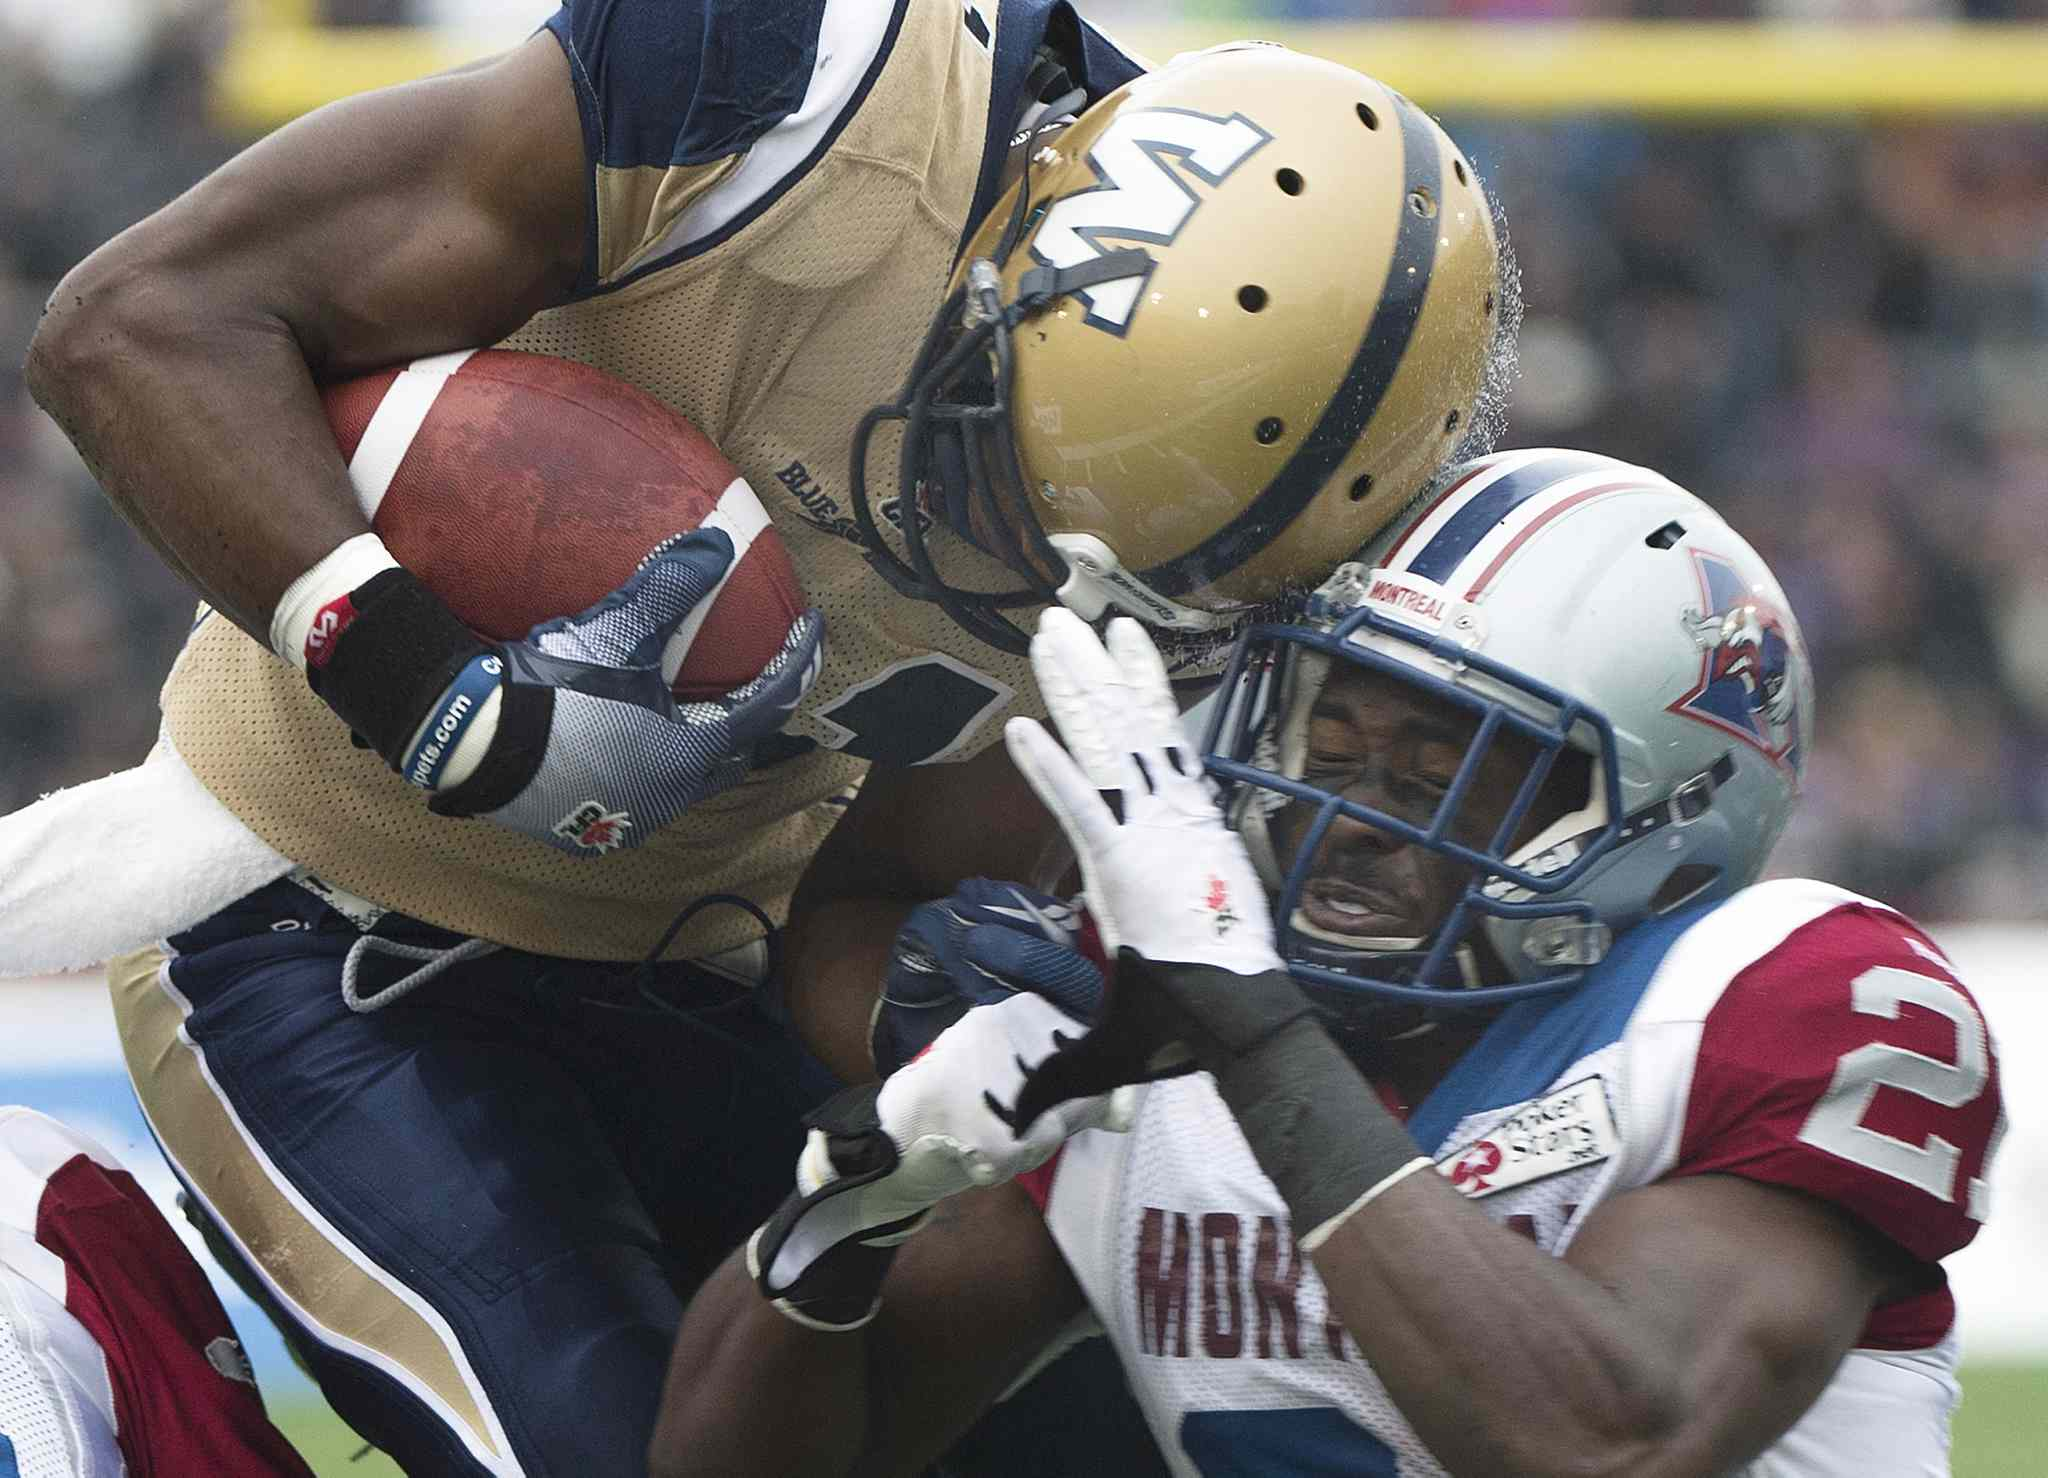 Winnipeg Blue Bombers' Cory Watson, left, is tackled by Montreal Alouettes' Mike Edem during first half CFL football action in Montreal, Monday. Winnipeg won, 34-27.